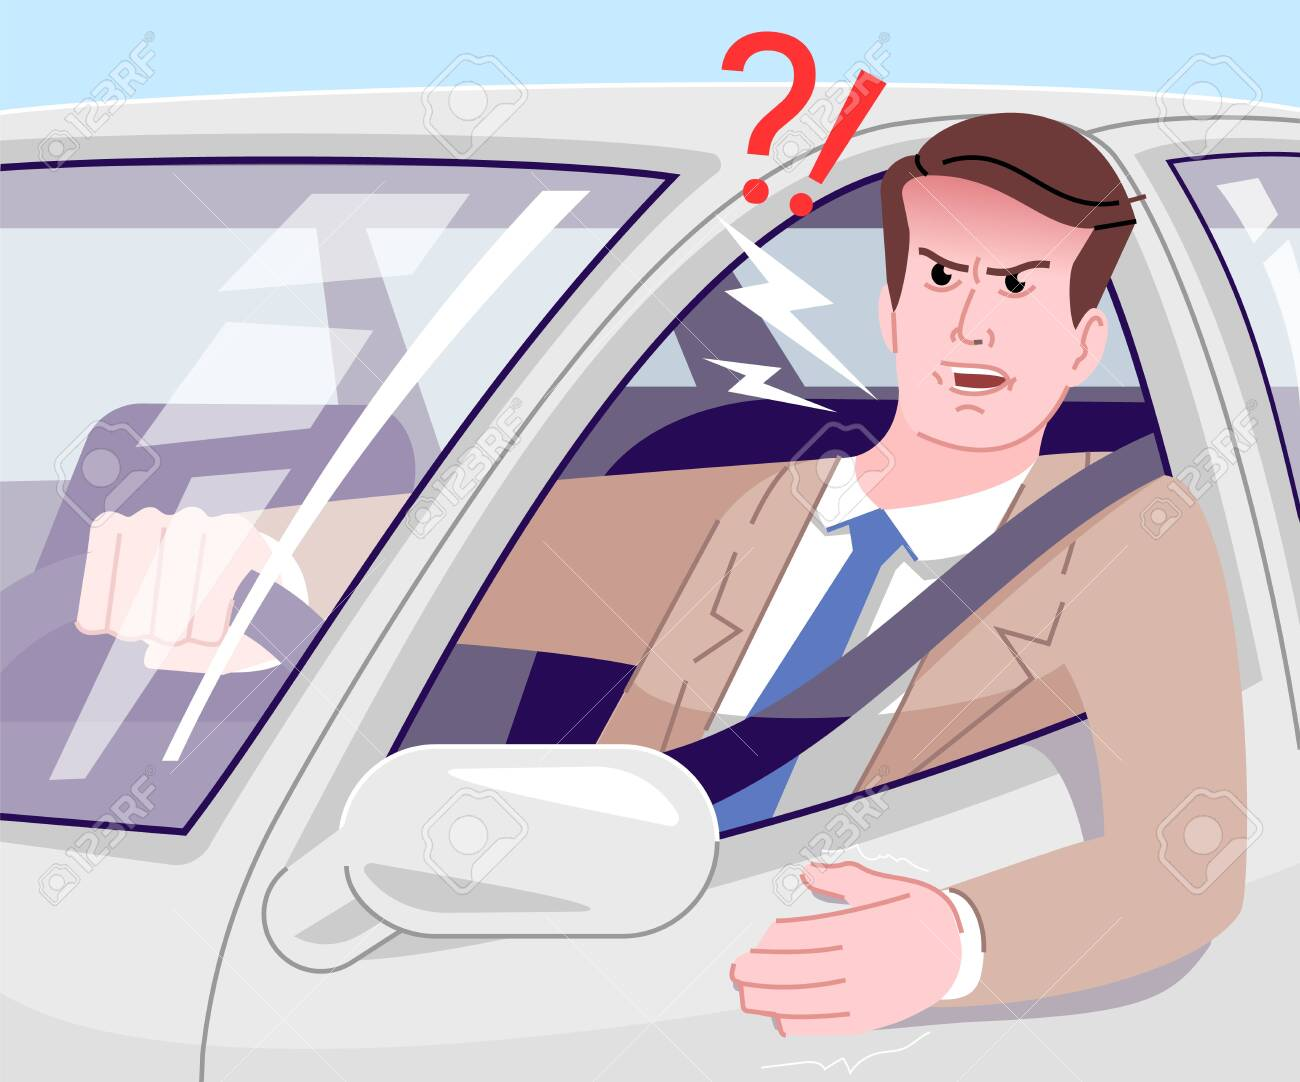 Traffic Jam Stress Flat Vector Illustration Angry Businessman Royalty Free Cliparts Vectors And Stock Illustration Image 132915643